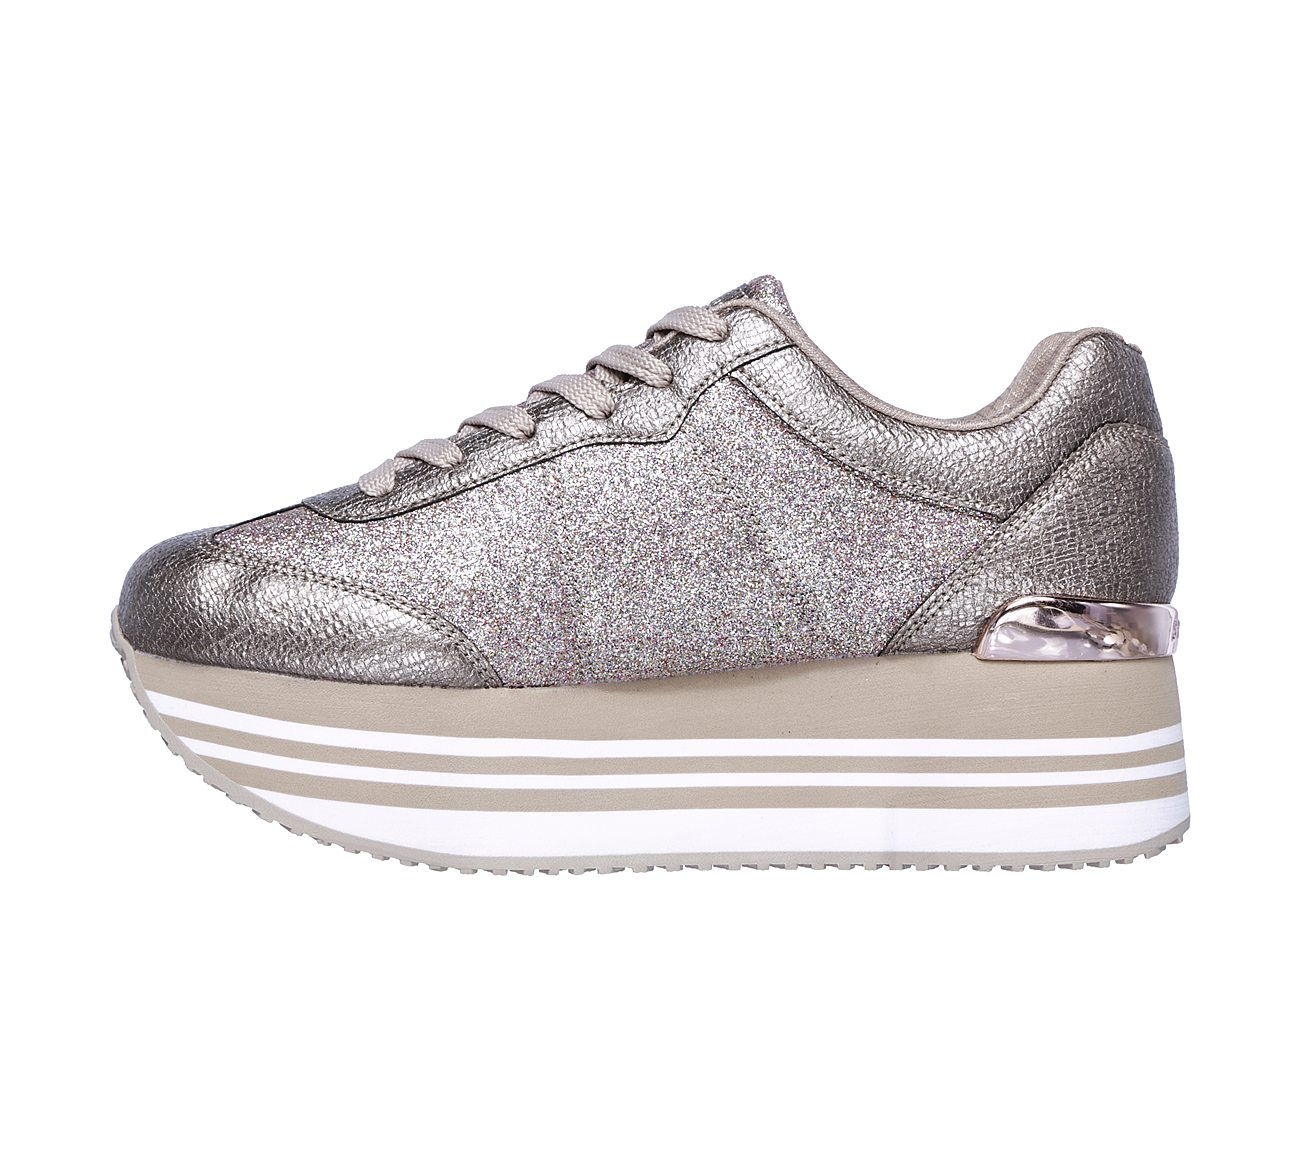 skechers highrise trainers